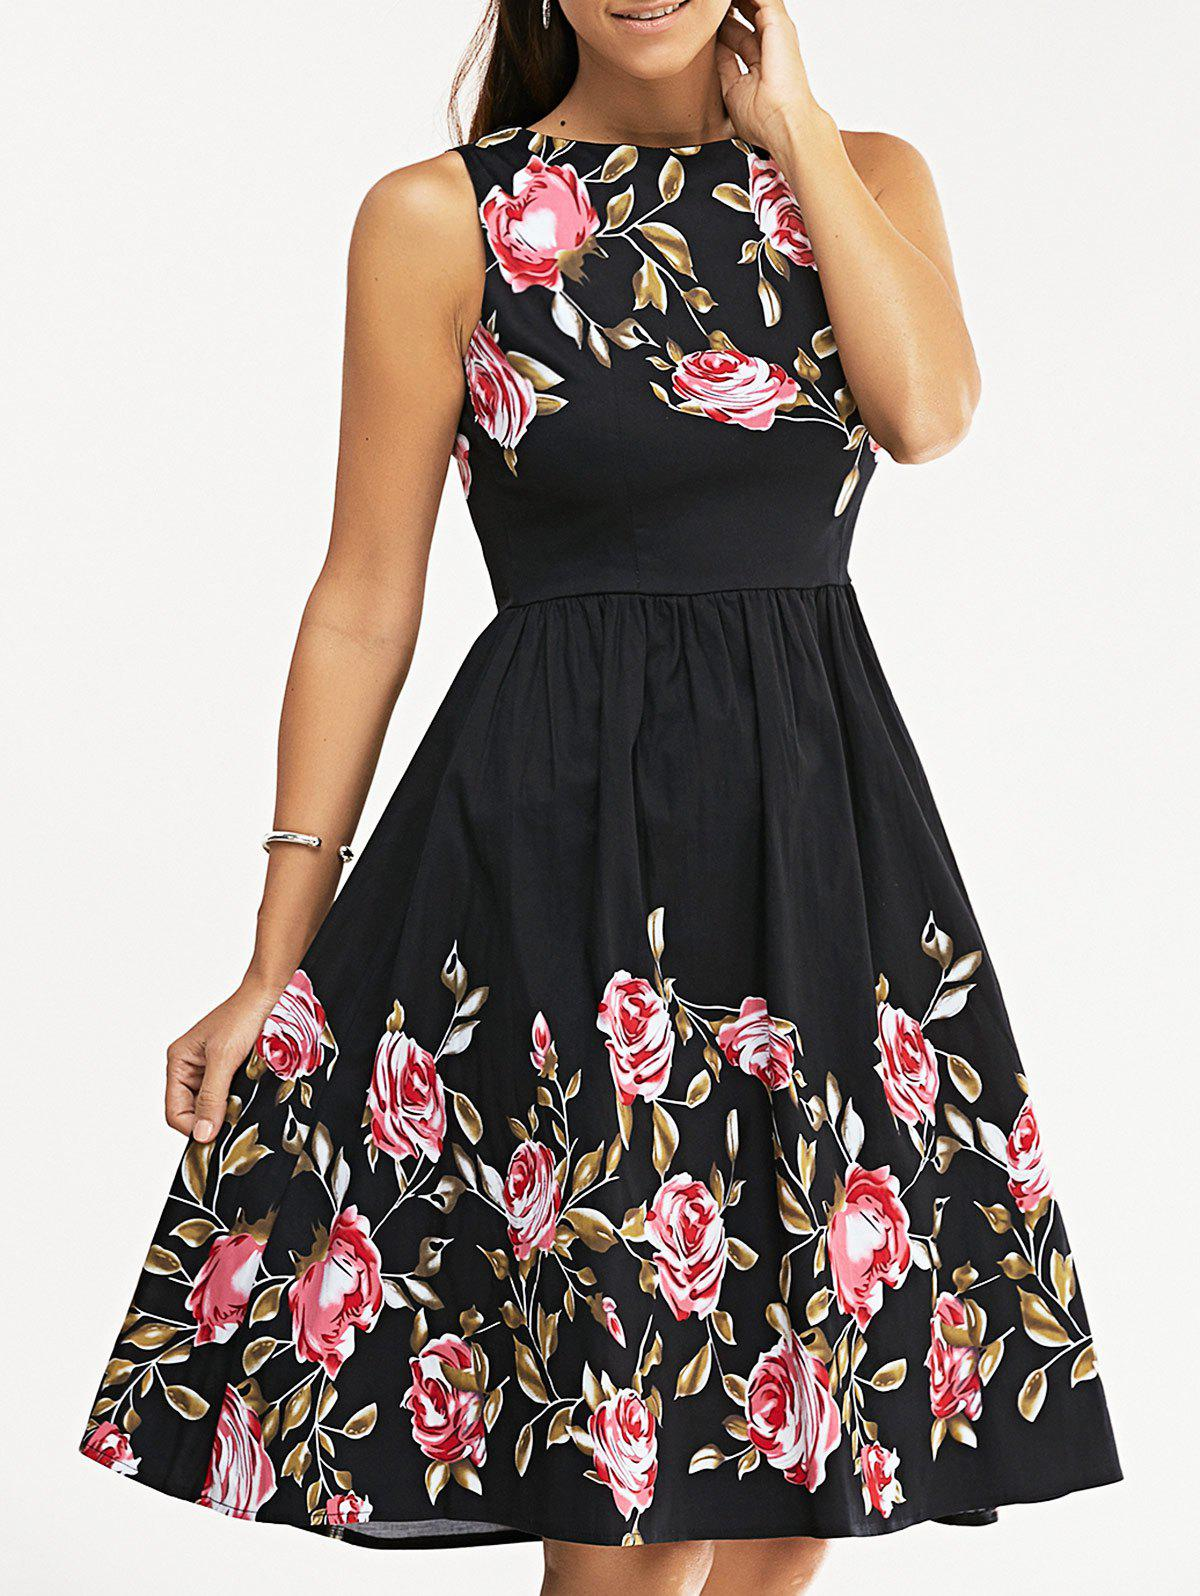 Retro Rose Floral Party Skater DressWOMEN<br><br>Size: 2XL; Color: BLACK; Style: Vintage; Material: Cotton Blend,Polyester; Silhouette: Ball Gown; Dresses Length: Knee-Length; Neckline: Round Collar; Sleeve Length: Sleeveless; Waist: Empire; Embellishment: Flowers; Pattern Type: Floral; Elasticity: Micro-elastic; With Belt: No; Season: Fall,Spring,Summer,Winter; Weight: 0.370kg; Package Contents: 1 x Dress;